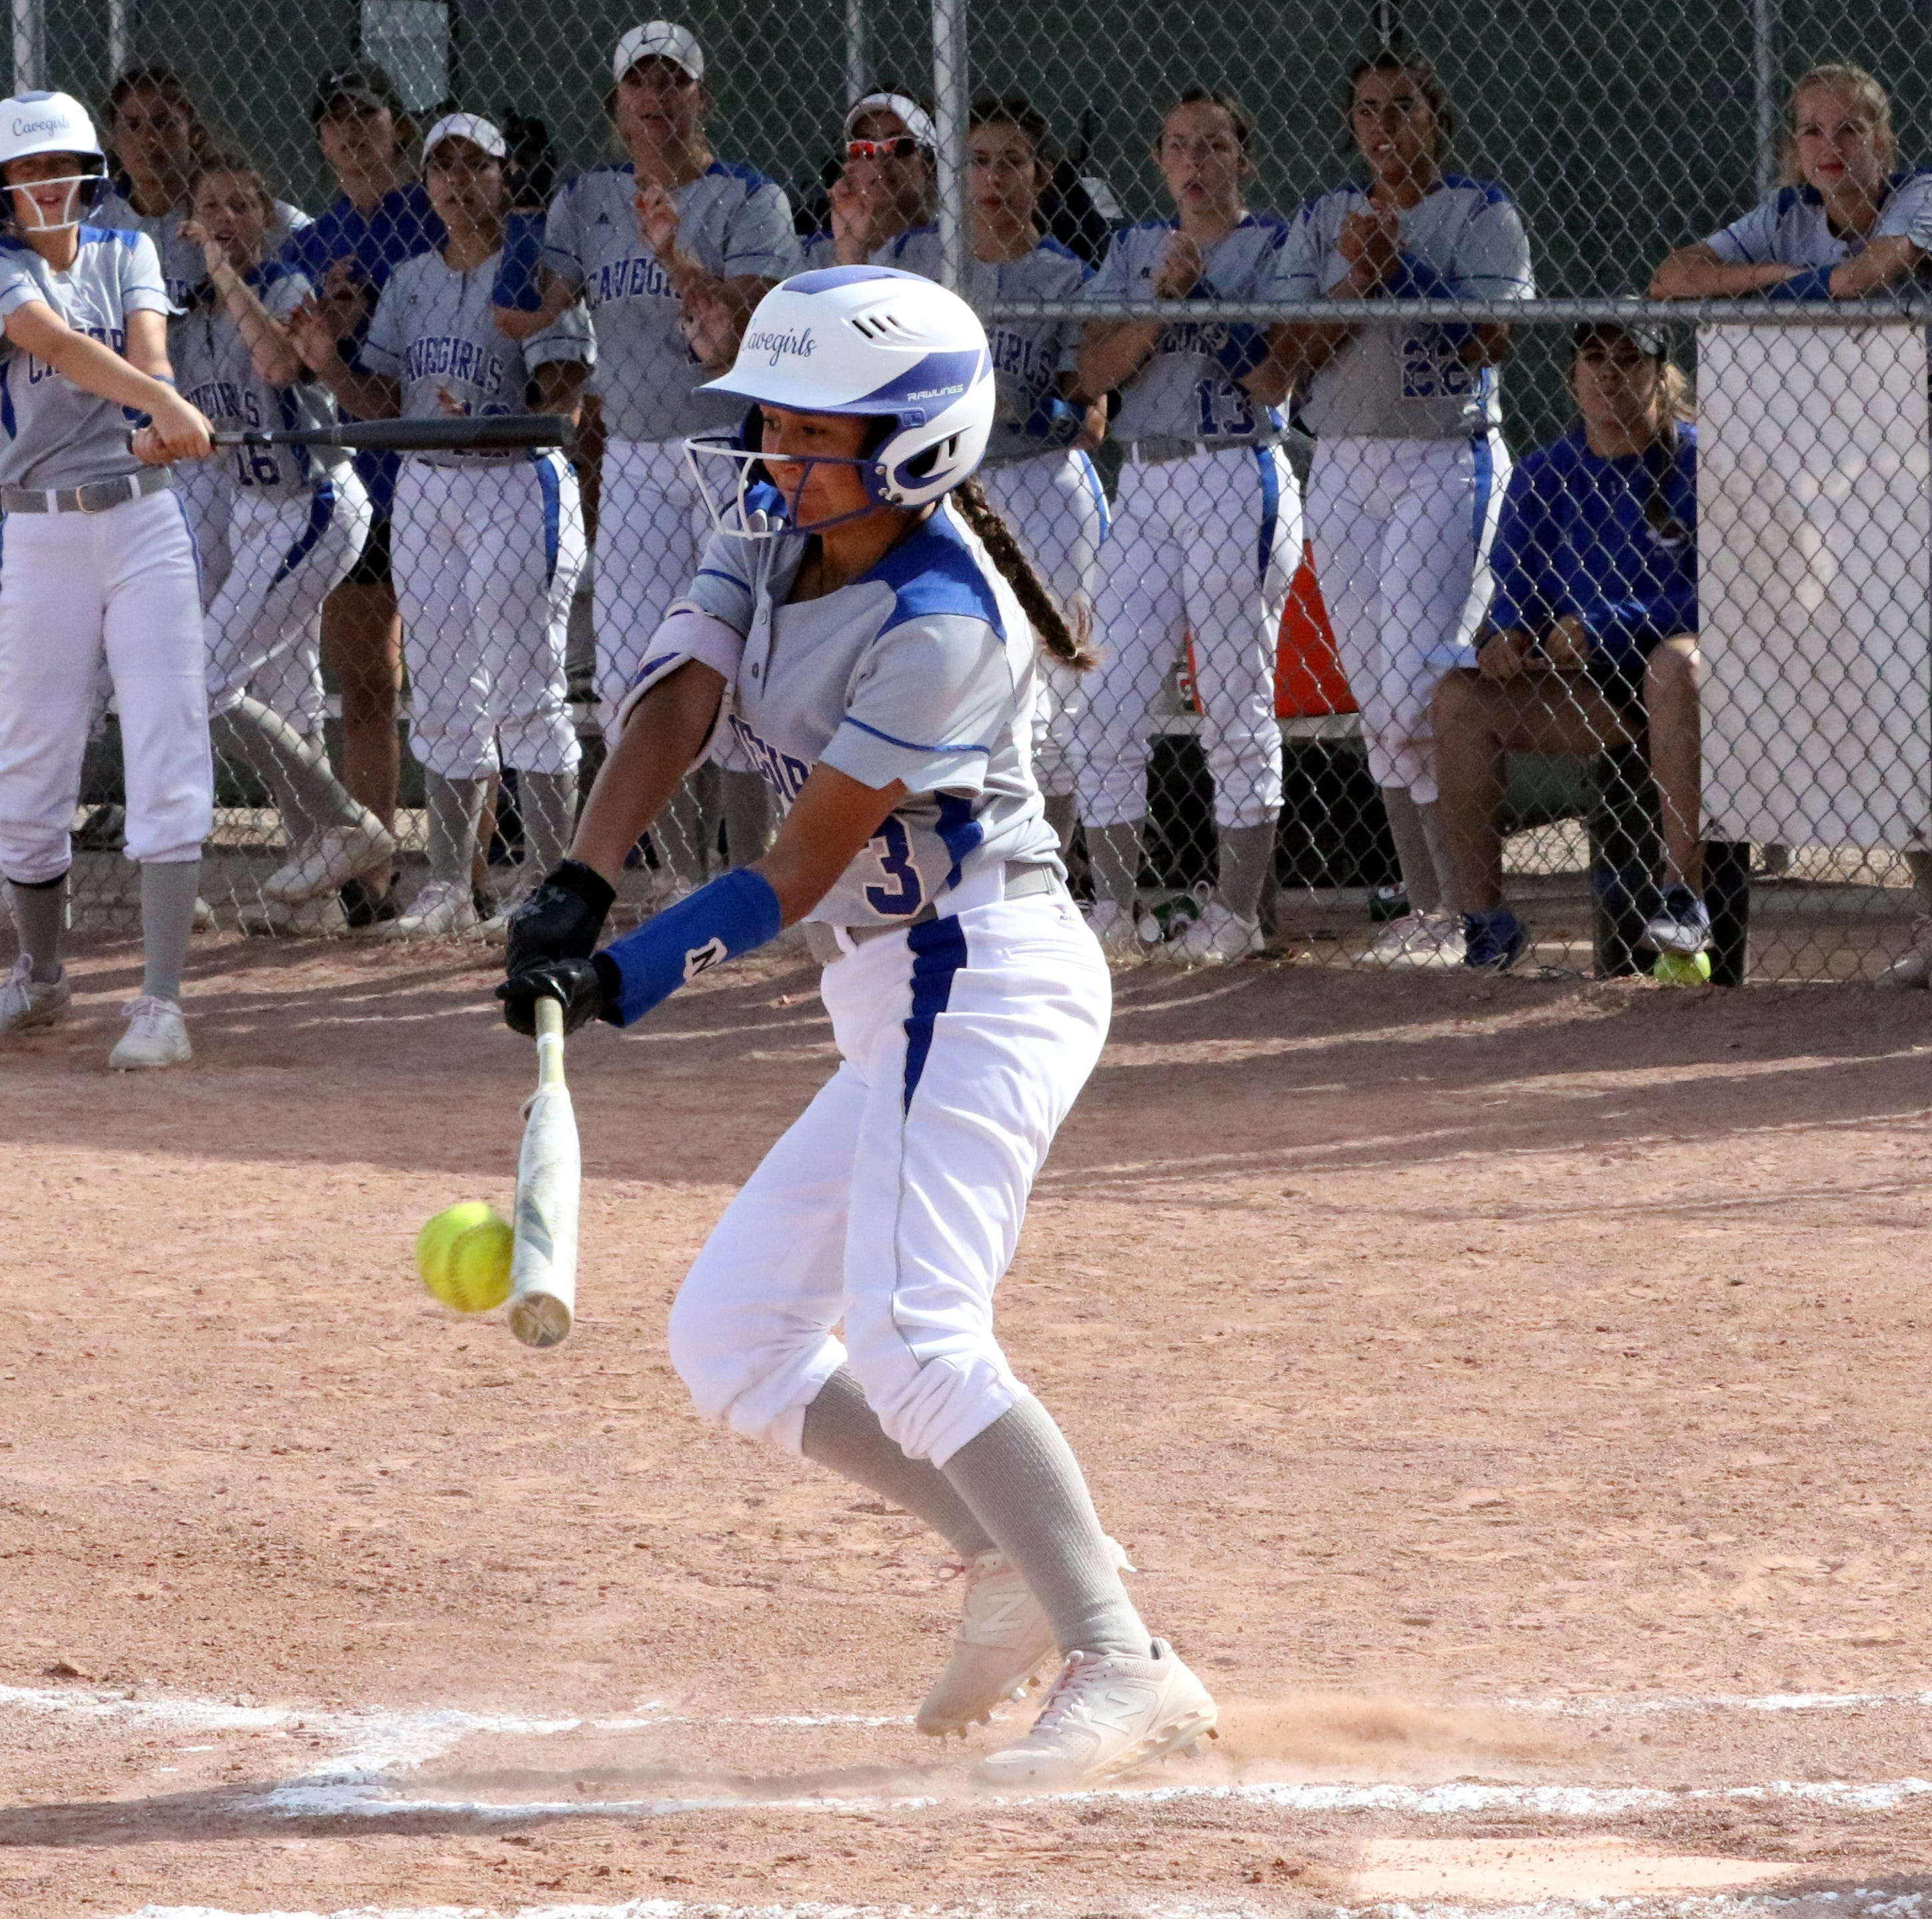 Cavegirls overwhelm Hobbs, heading to 5A softball title game